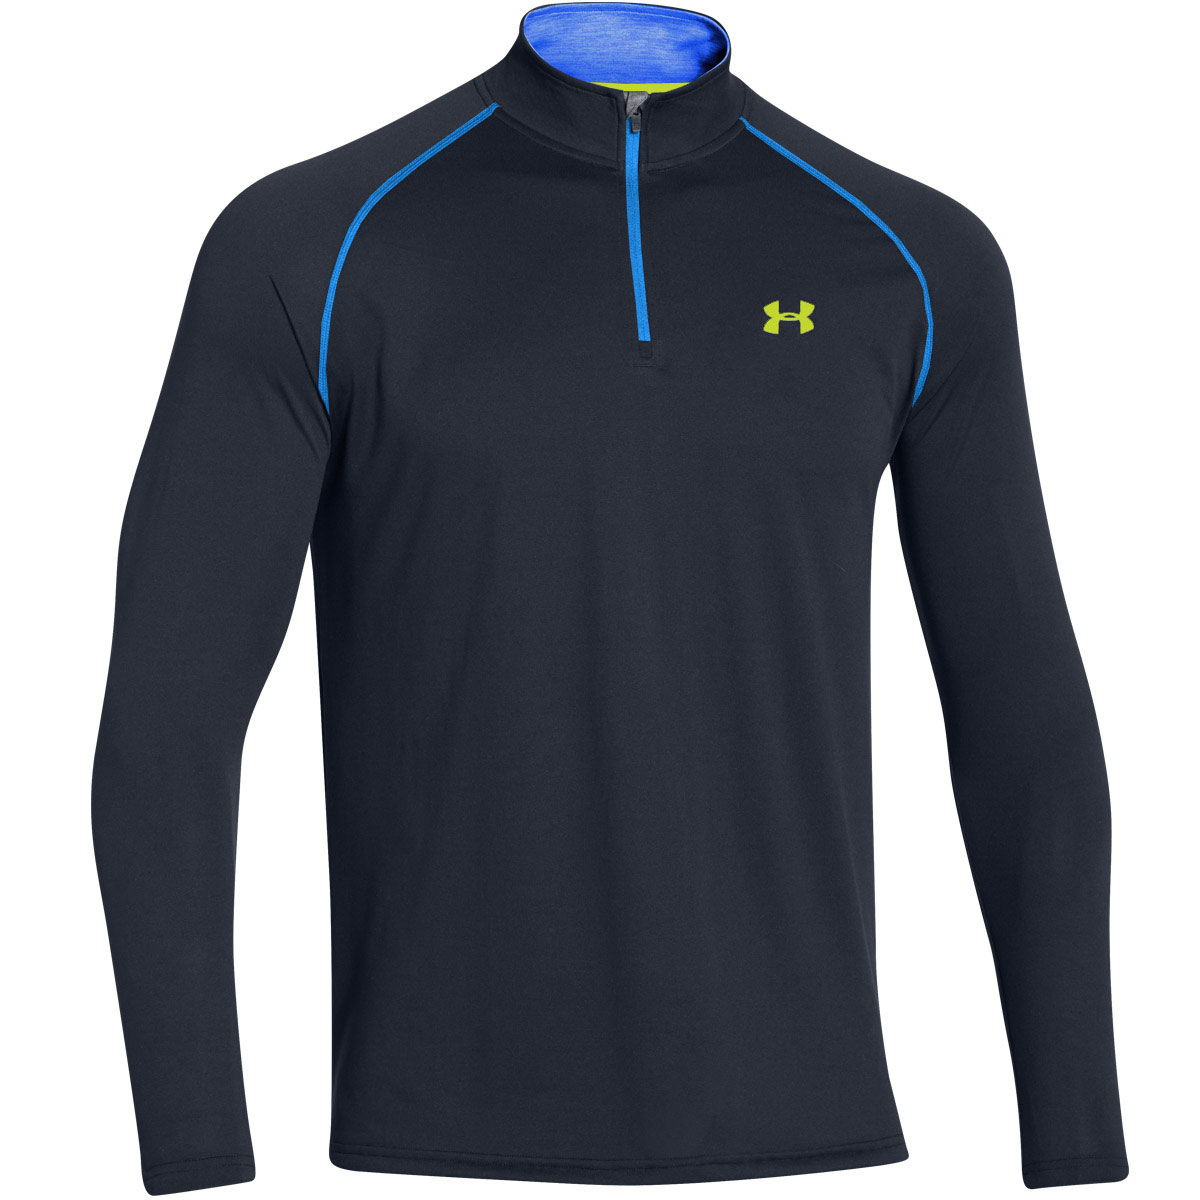 Under armour mens ua tech 1 4 zip long sleeve top gym for Mens under armour shirts